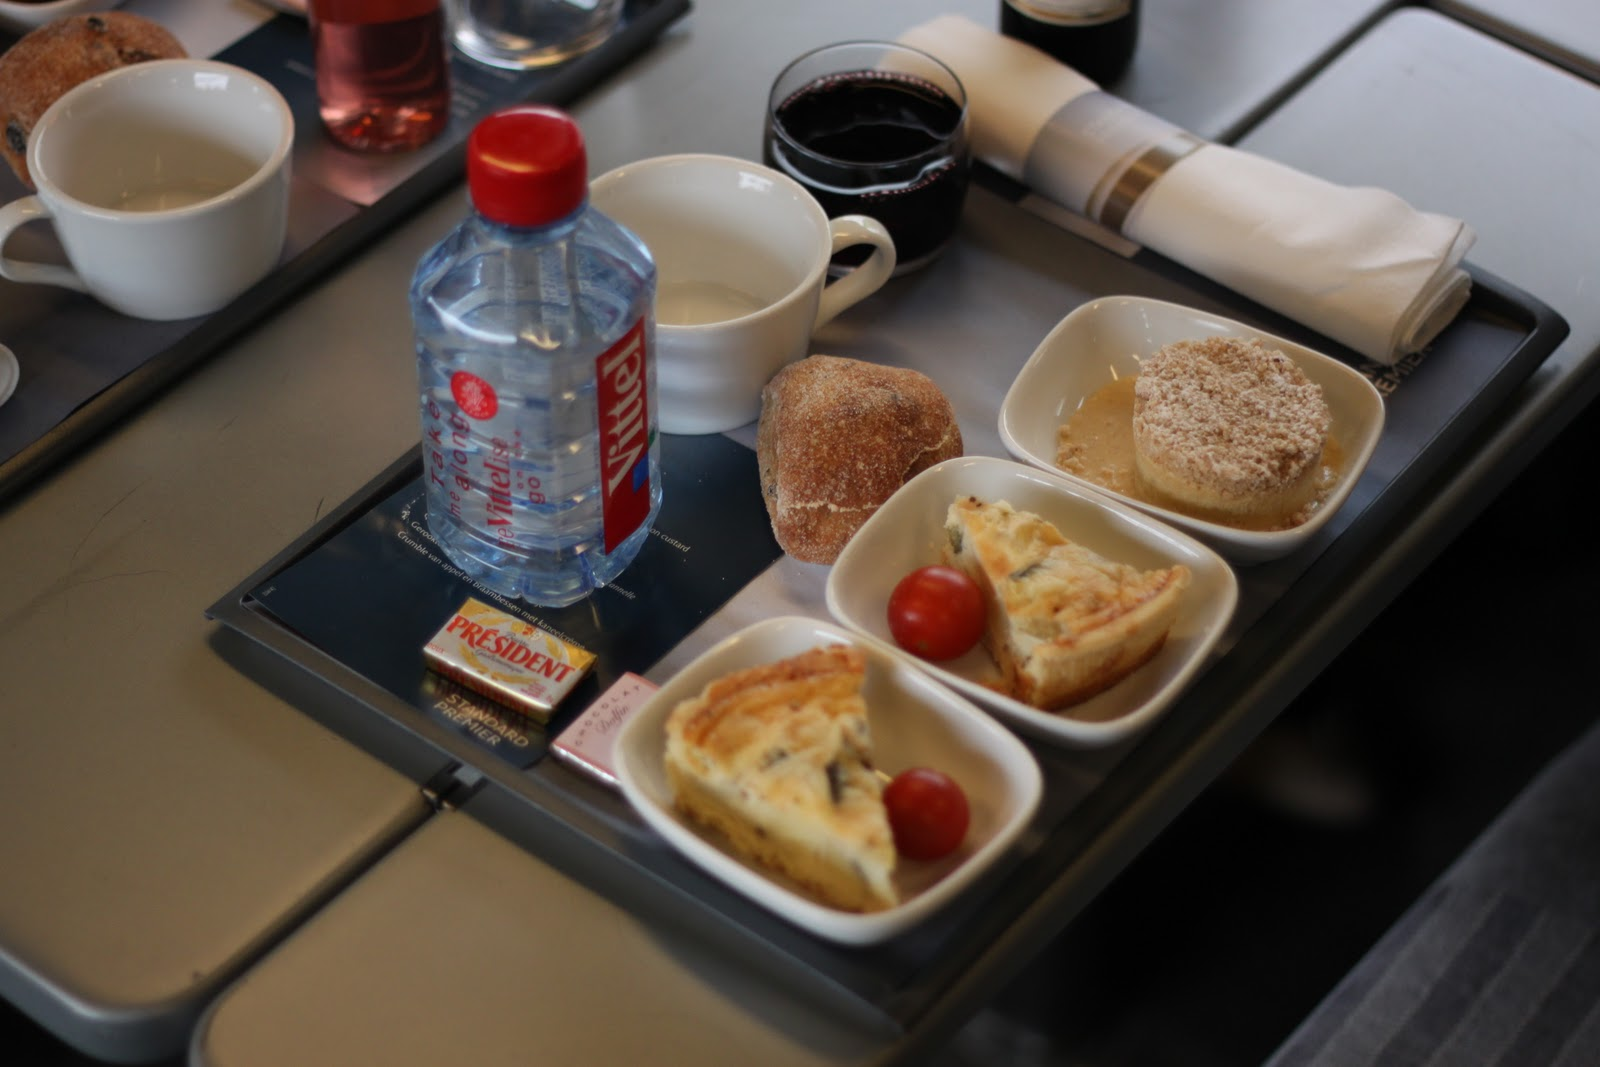 Lunch on the Eurostar Standard Premier